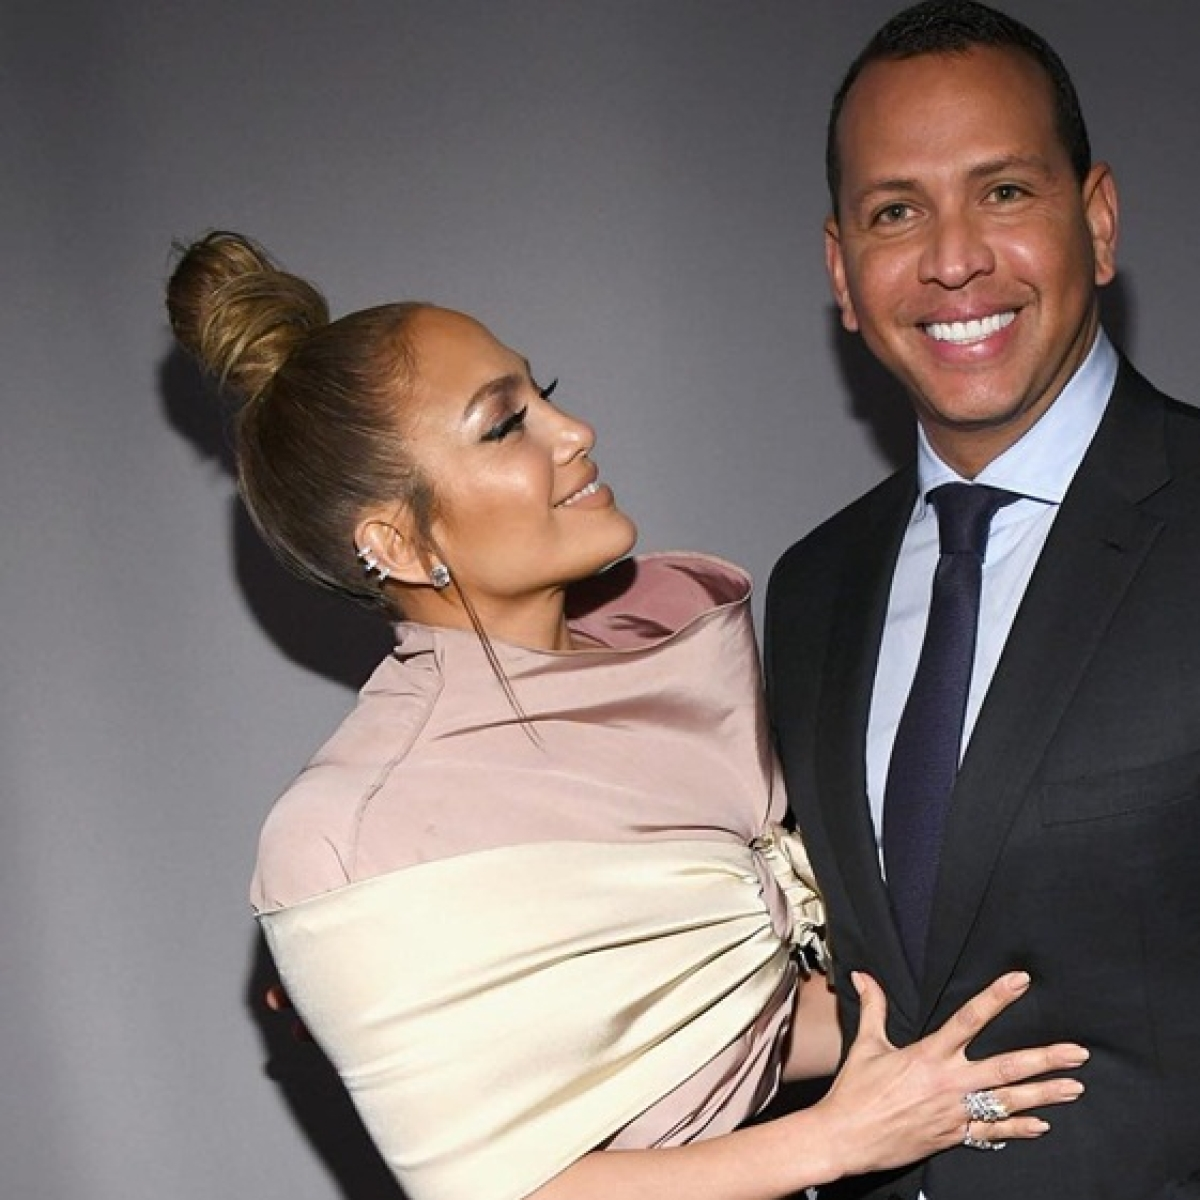 Alex Rodriguez gifts Jennifer Lopez  Porshe worth Rs 1.4 cr on her 50th Birthday